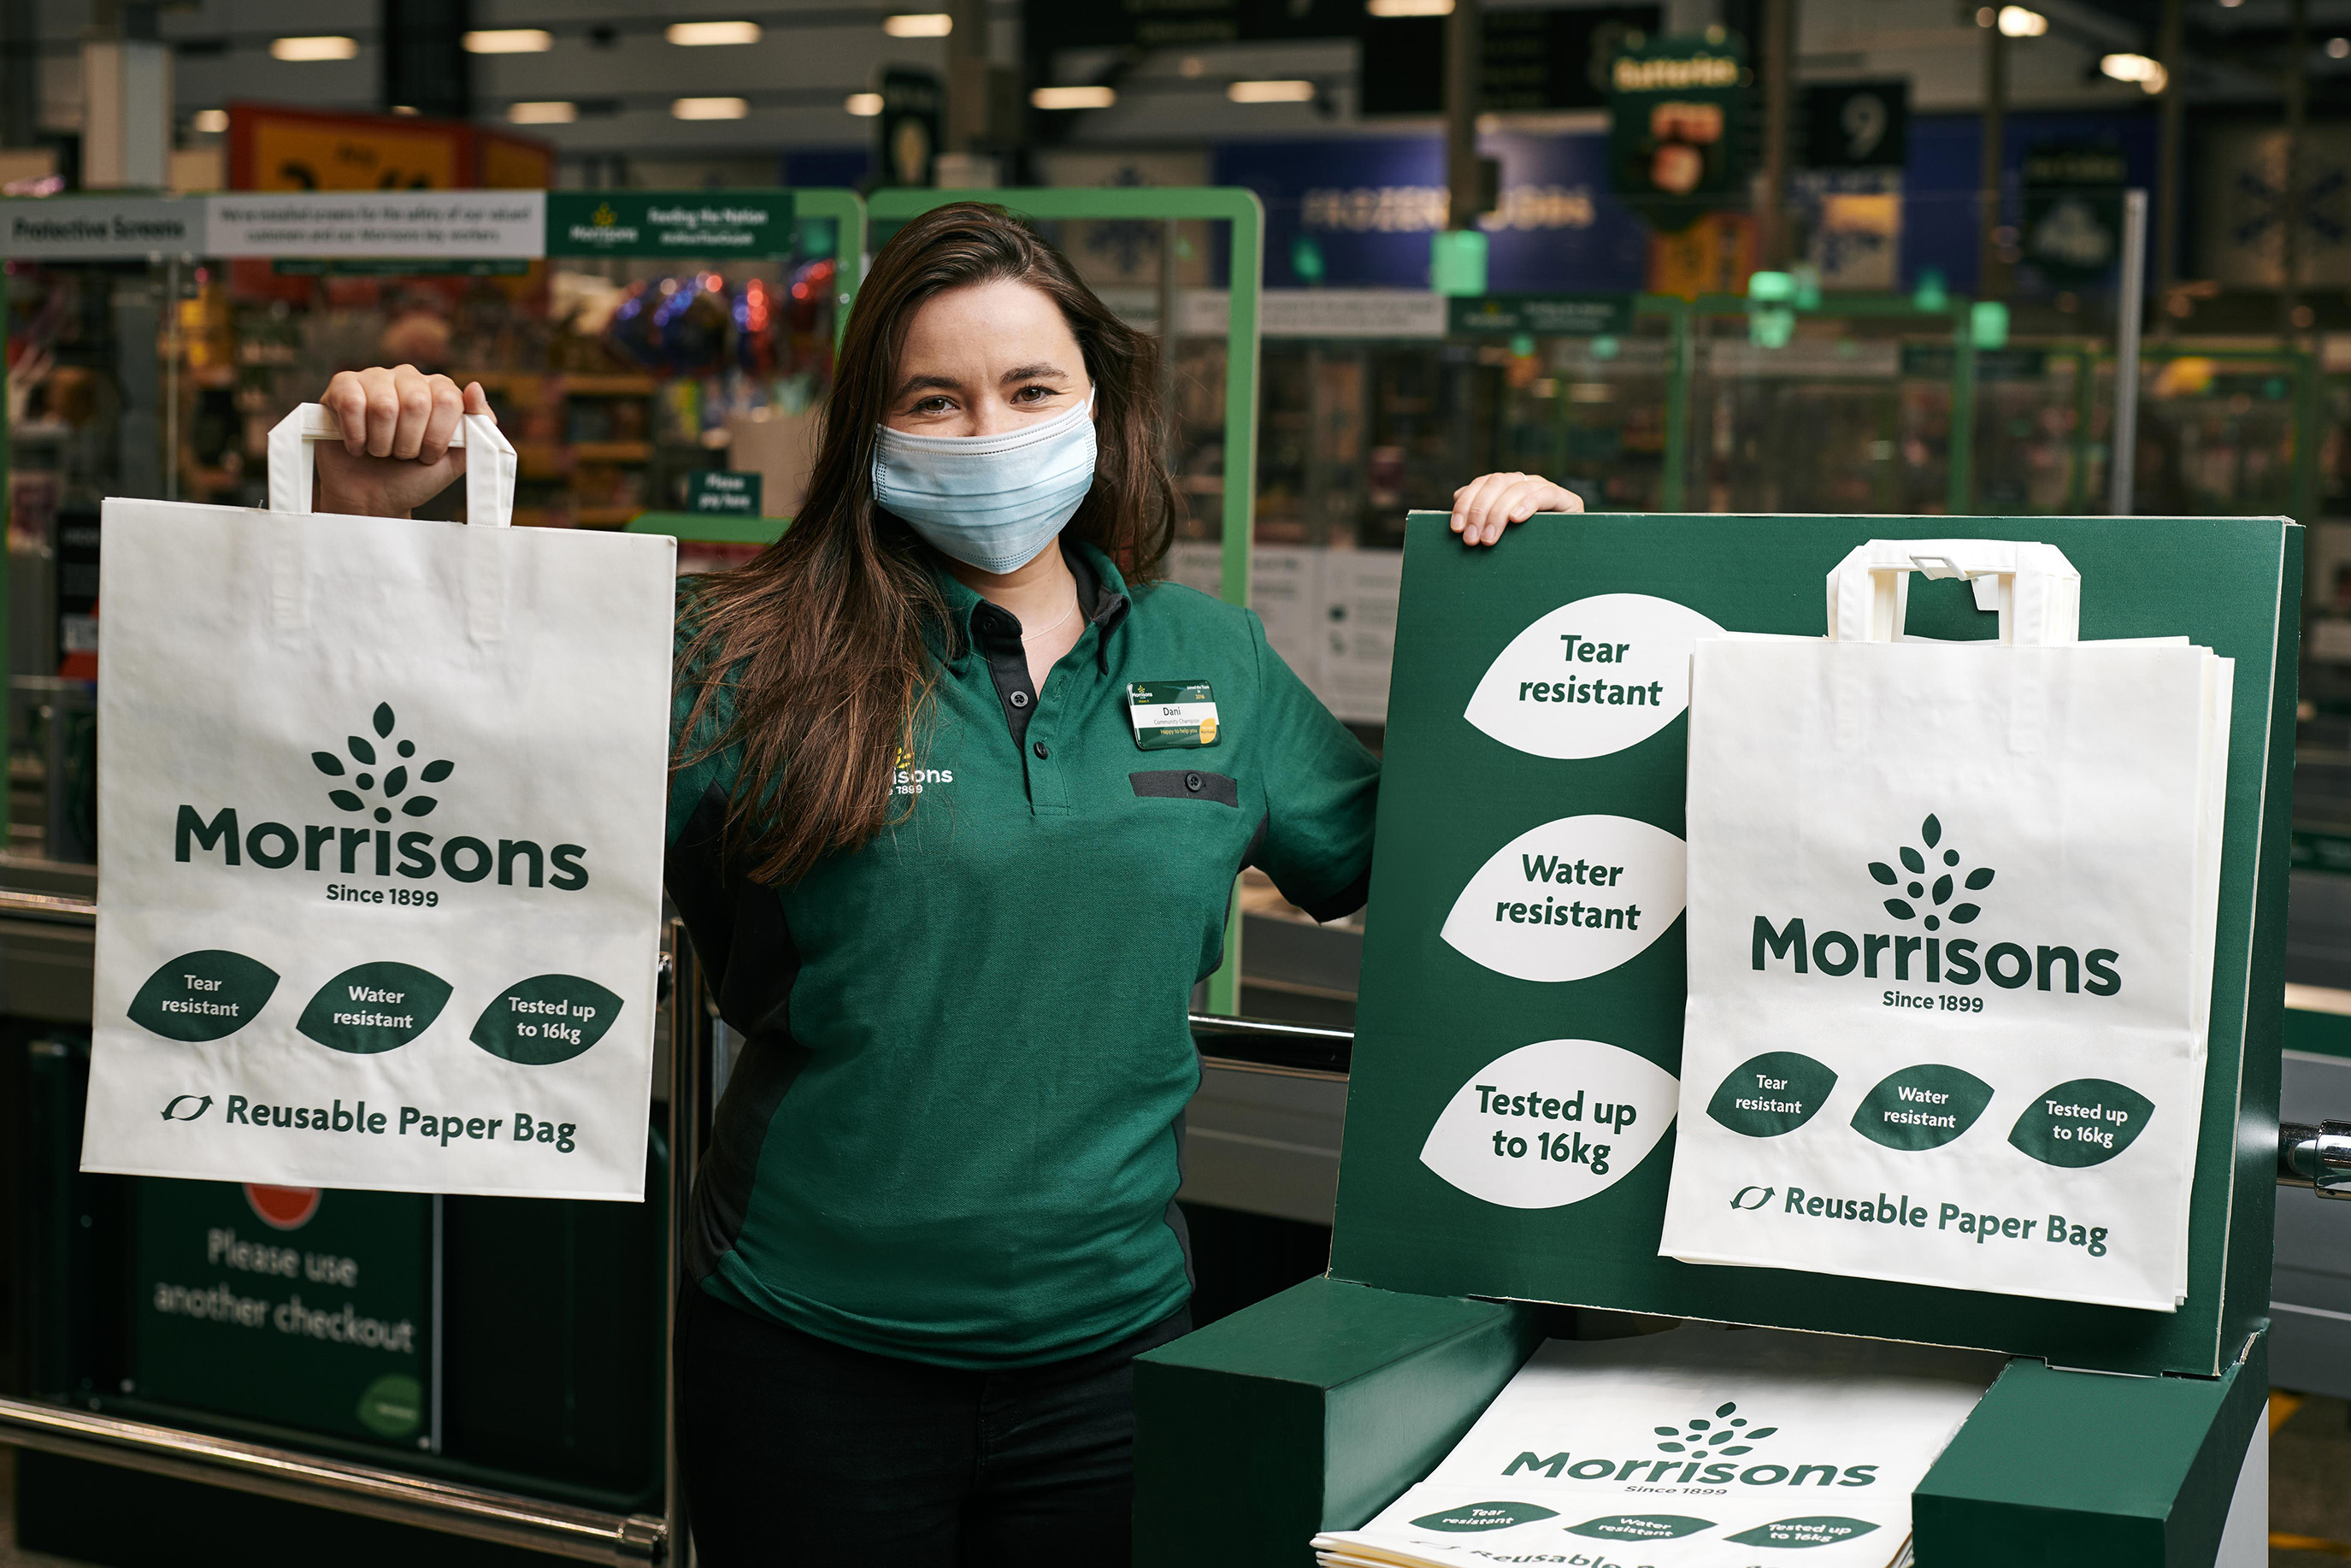 Morrisons could ditch reusable plastic bags